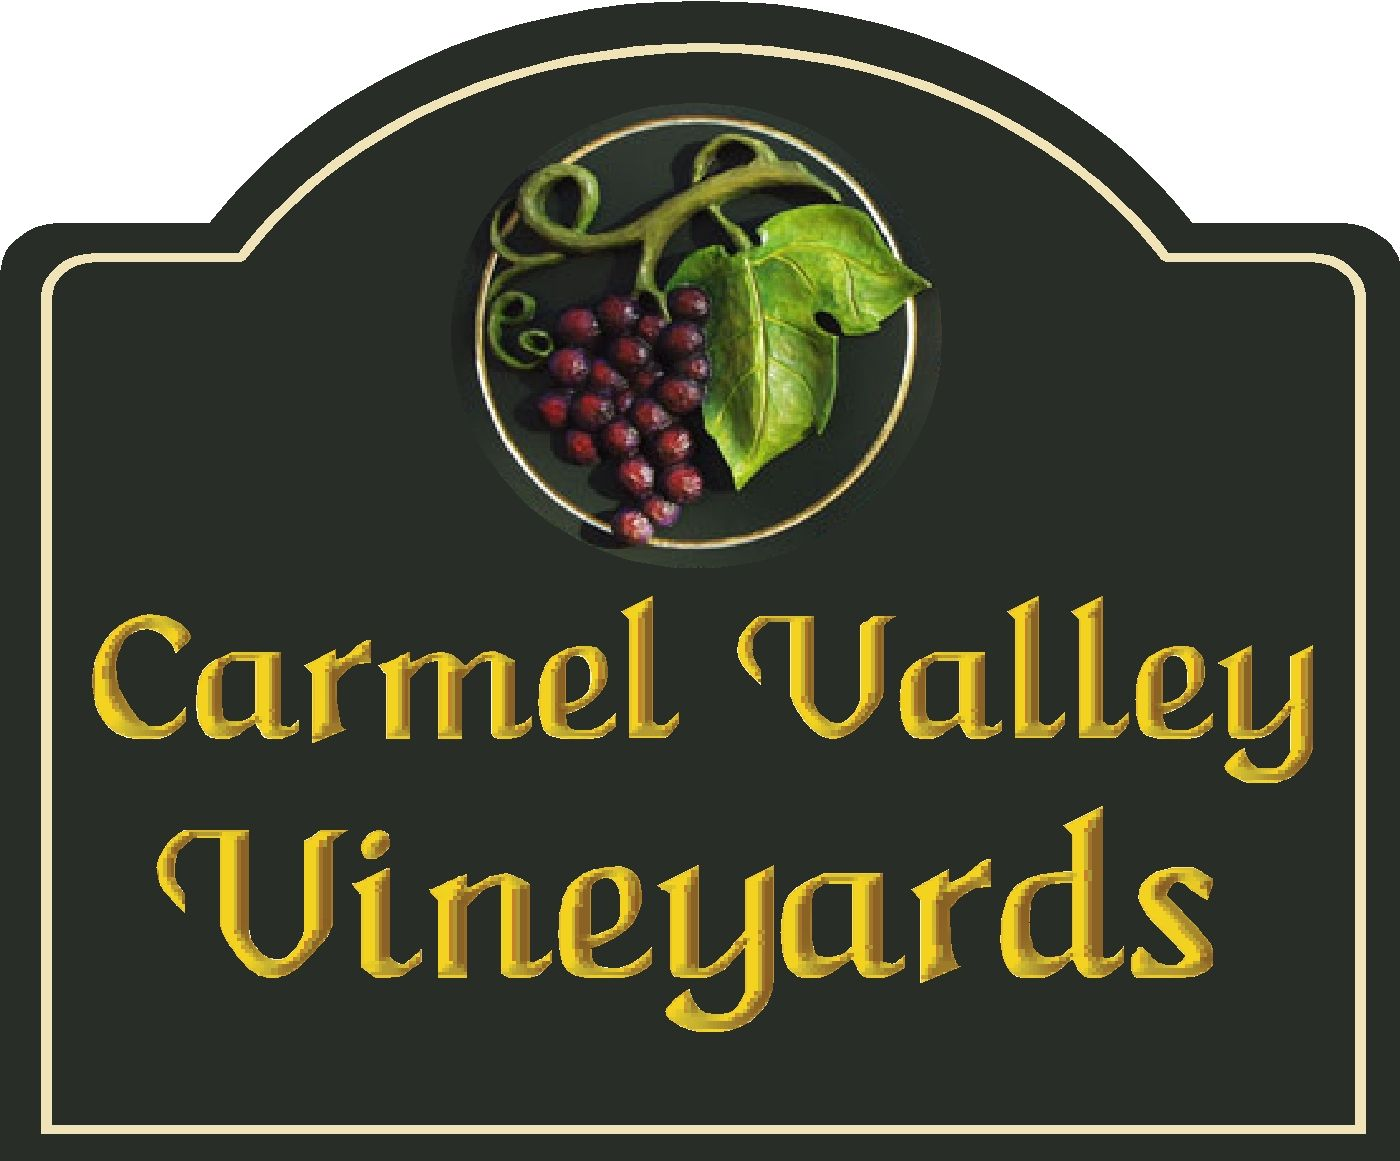 R27068 - Carved Carmel Valley Vineyards Entrance Sign, with 3D Grape Cluster